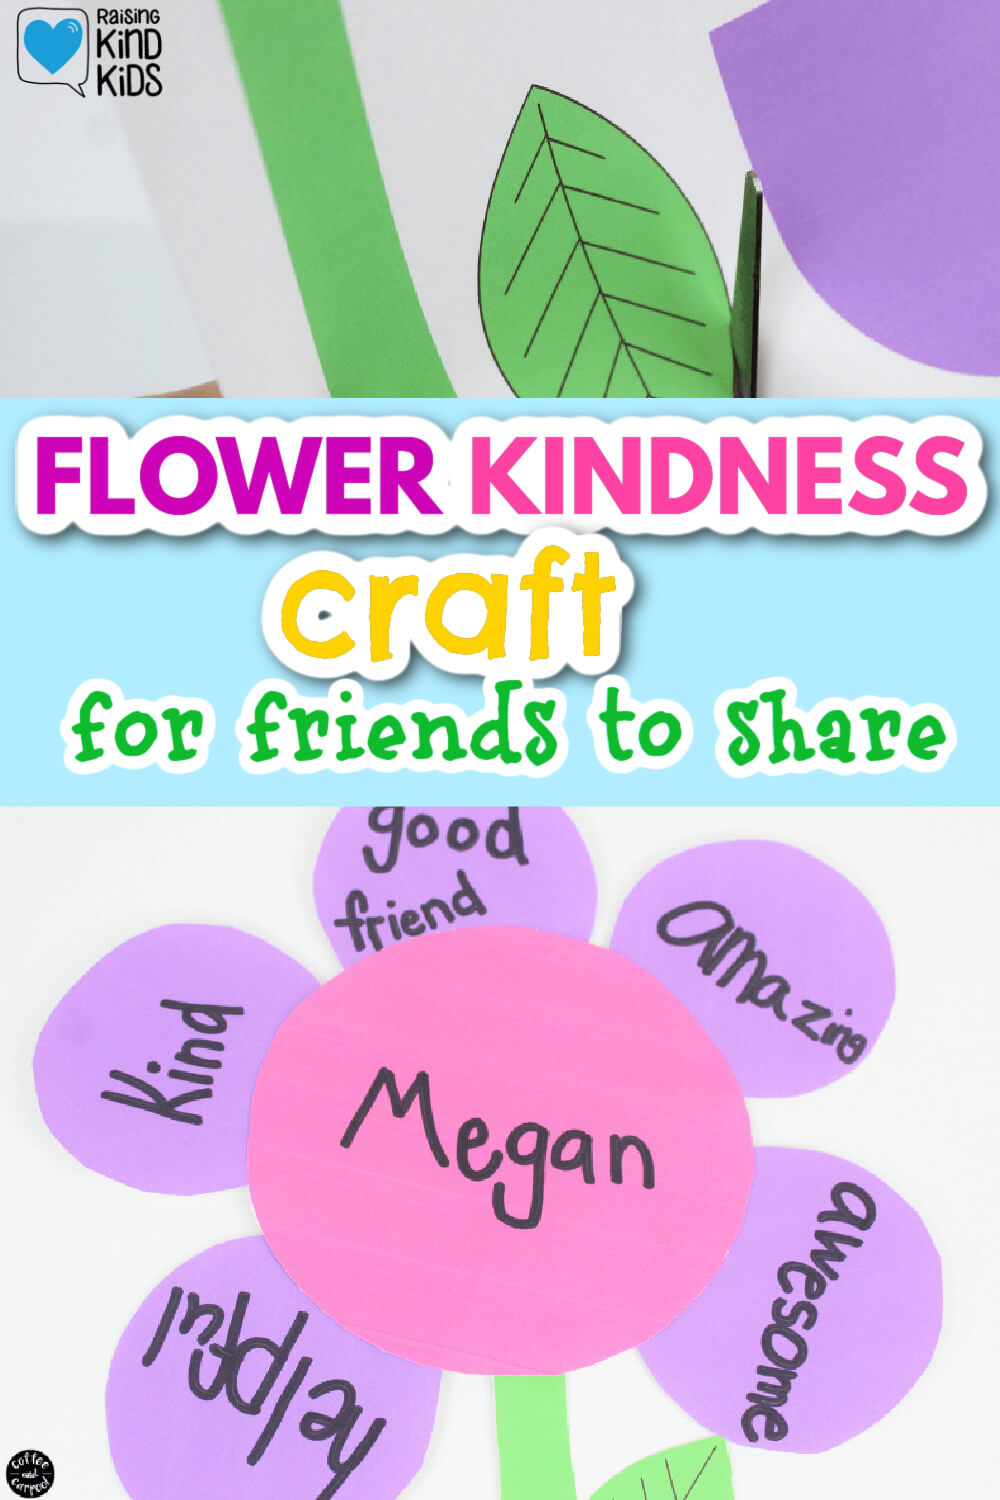 This flower craft is a great friendship craft that friends can make for each other to spread kindness. It's a great kindness activity for kid to tell their friends why they appreciate them. #craftideas #kindnessactivitiesforkids #kindnessactivities #flowercrafts #springcrafts #friendscrafts